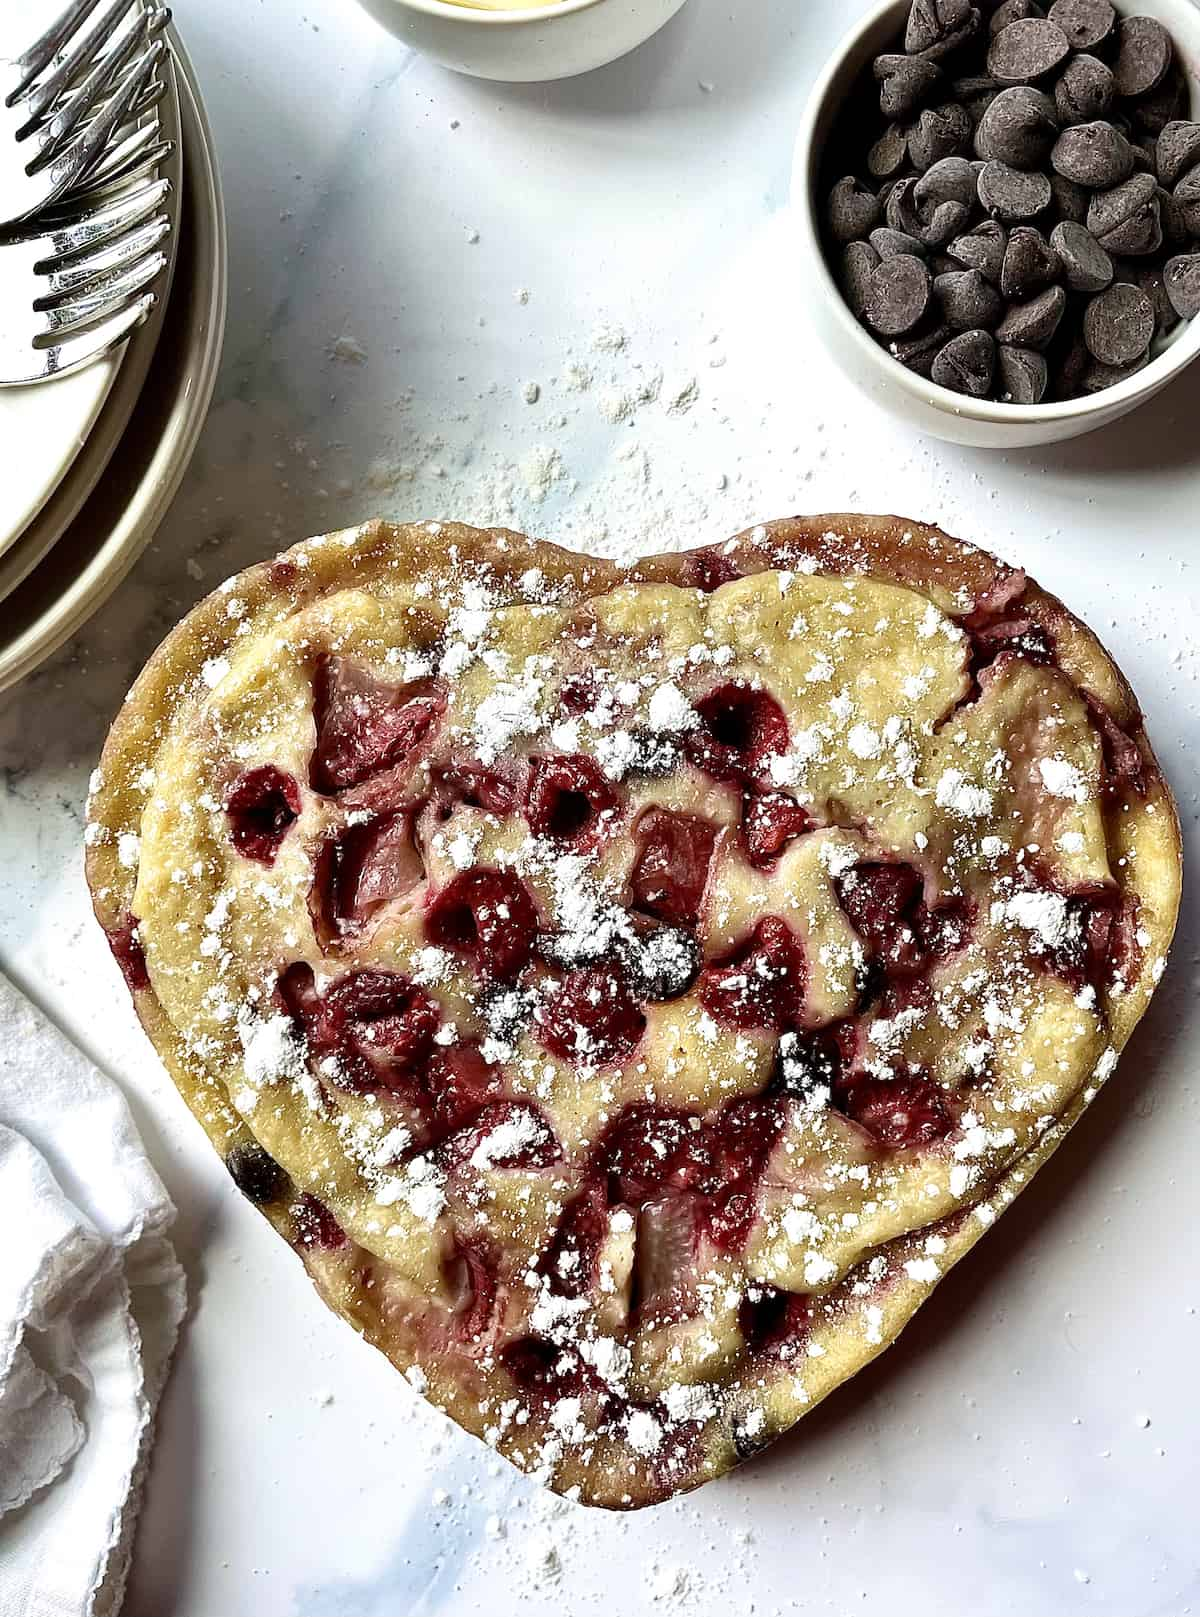 instant pot pancake in a heart shape with fruit